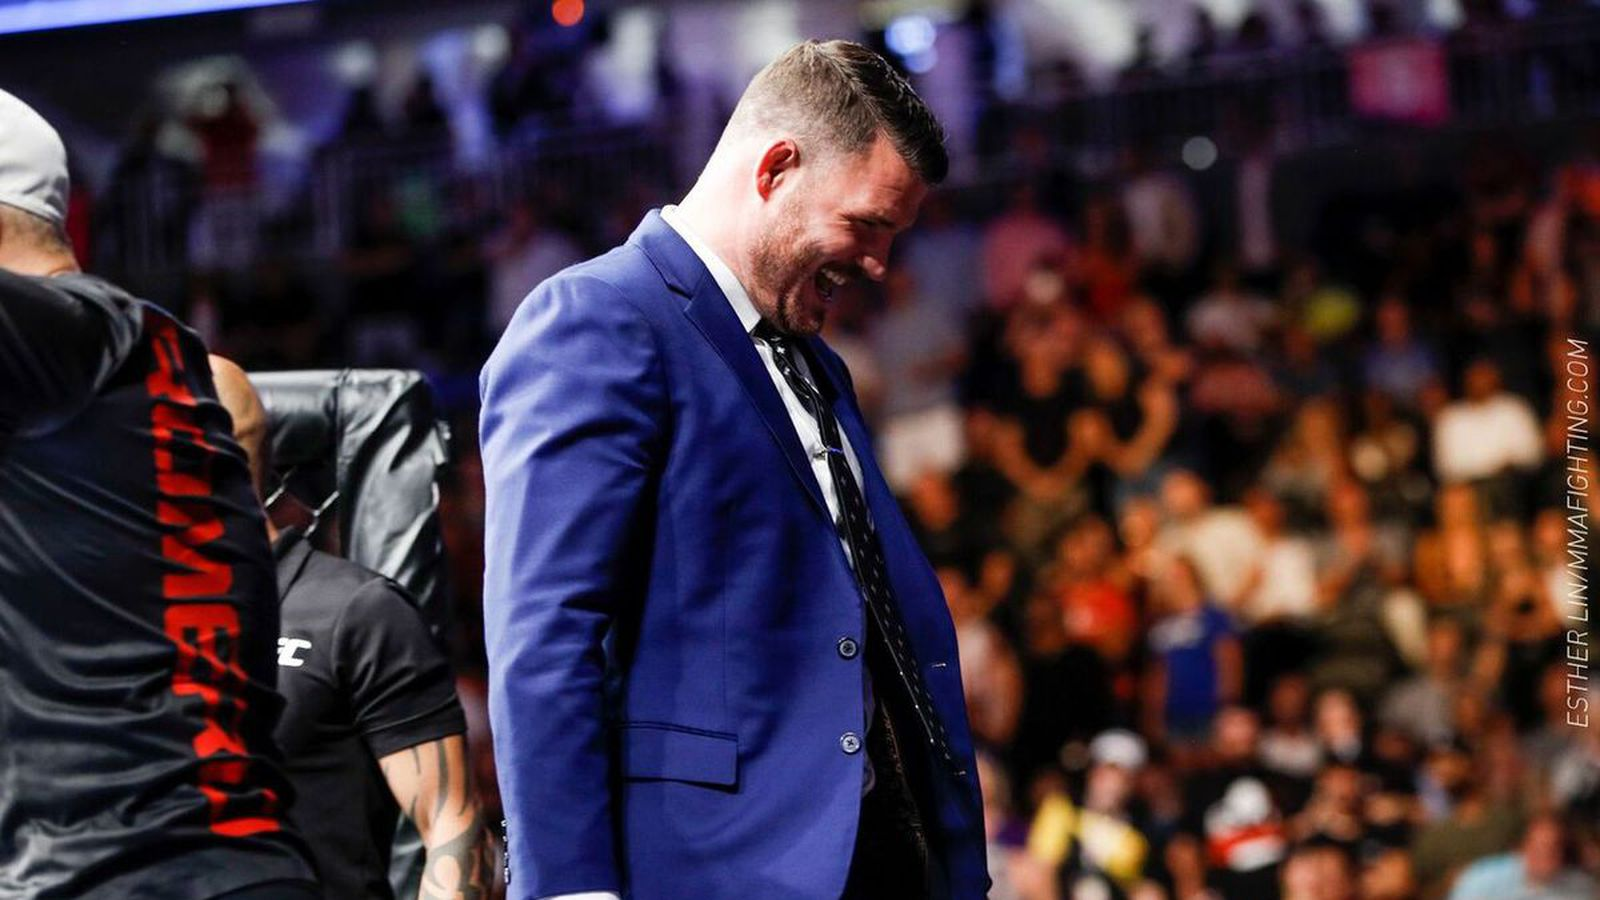 Chris Weidman might attend UFC 214 just to slap 'idiot' Michael Bisping for insulting his dad